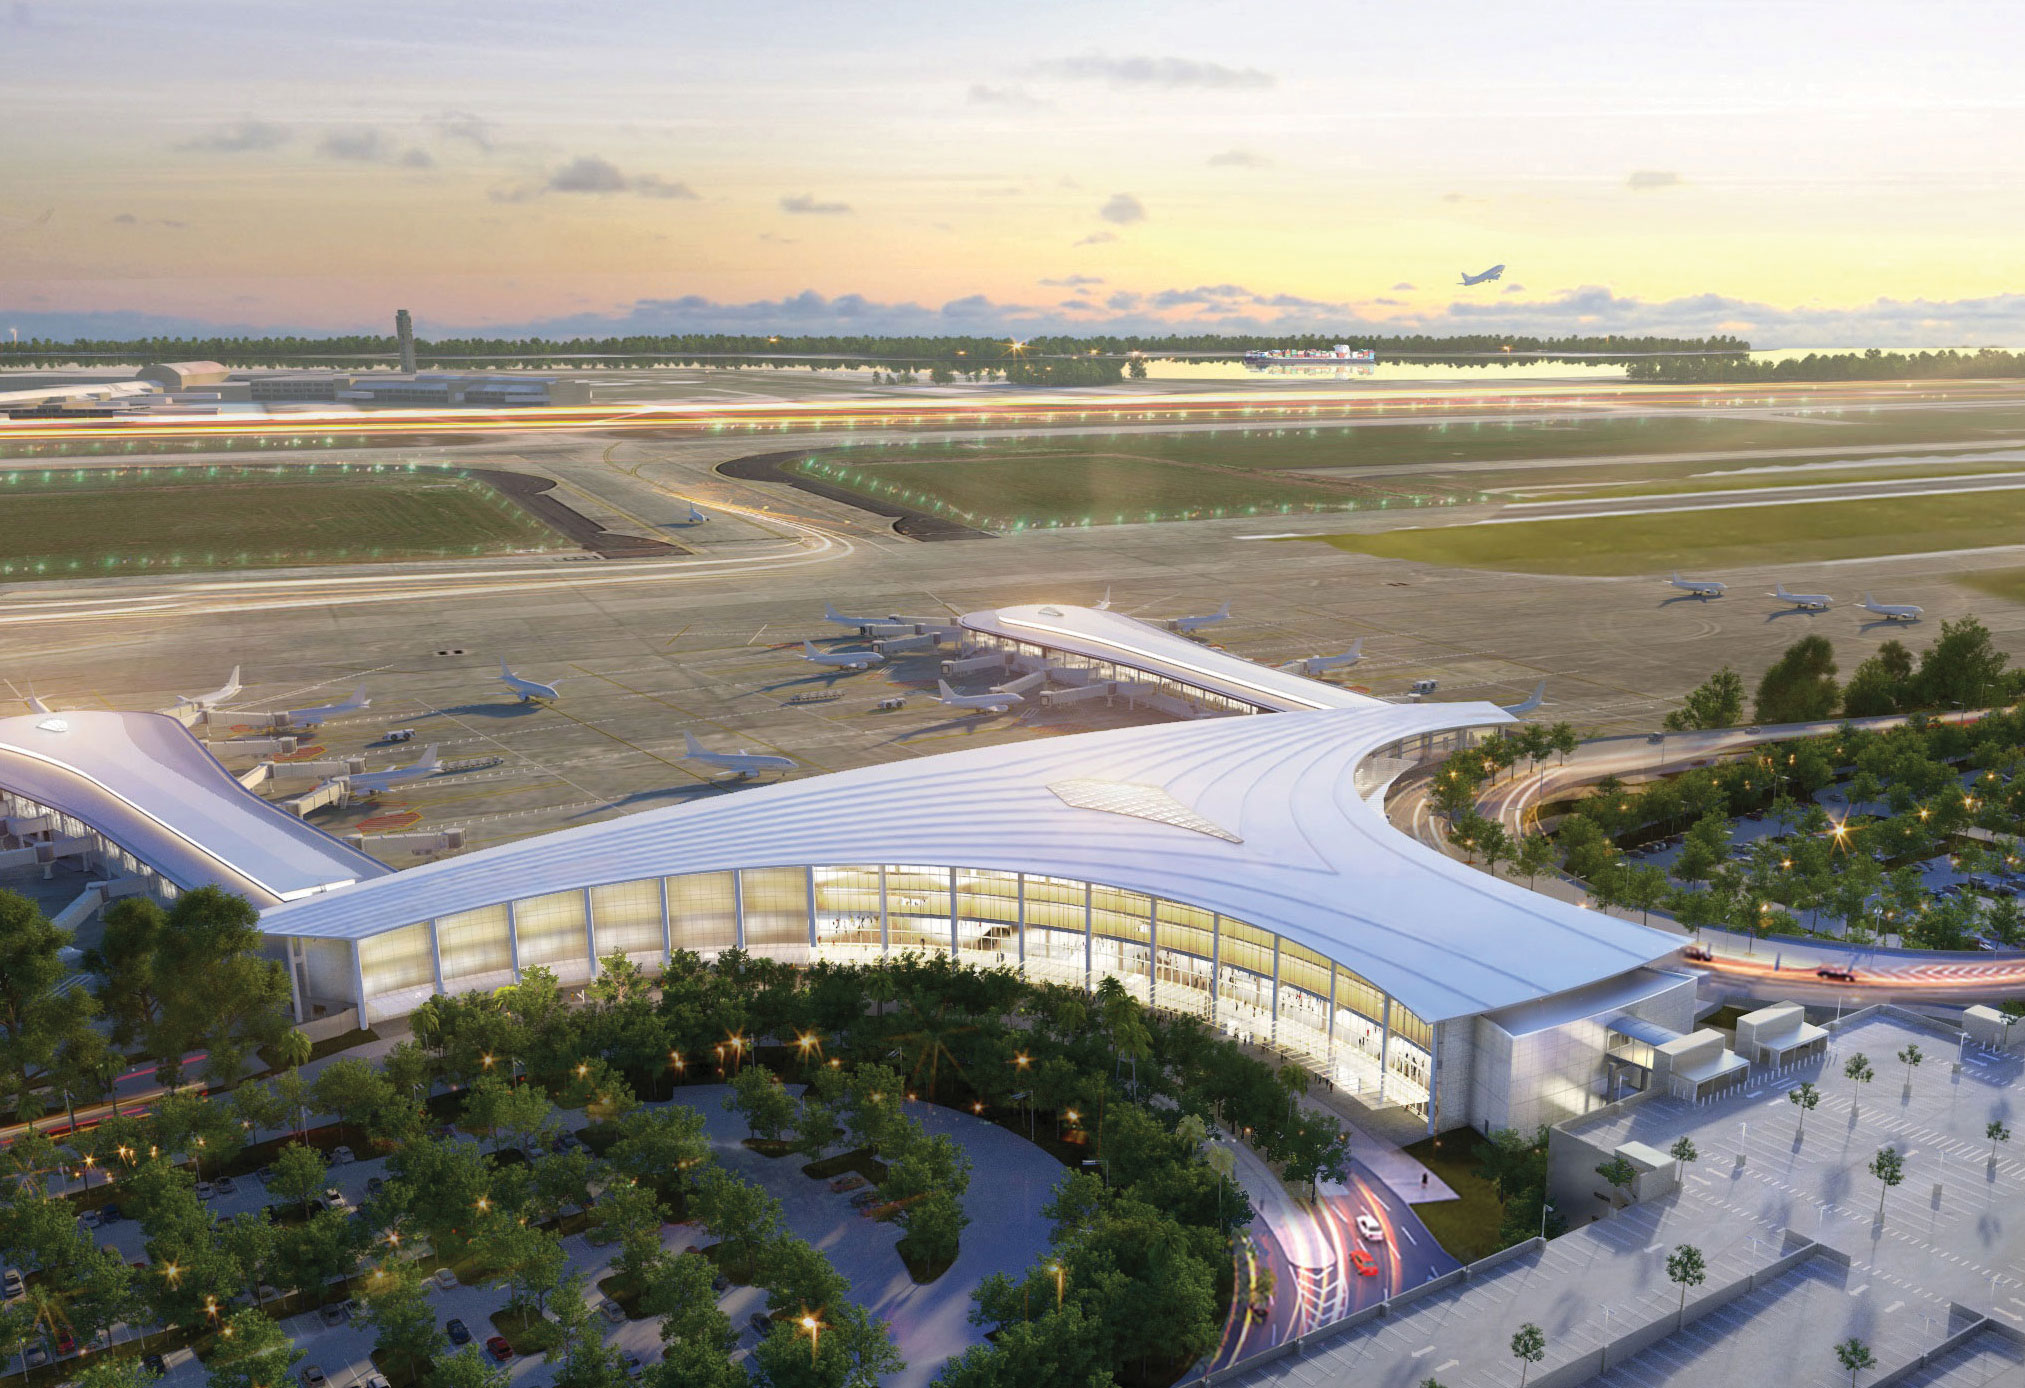 New looks at Louis Armstrong New Orleans International Airport's forthcoming $1 billion terminal